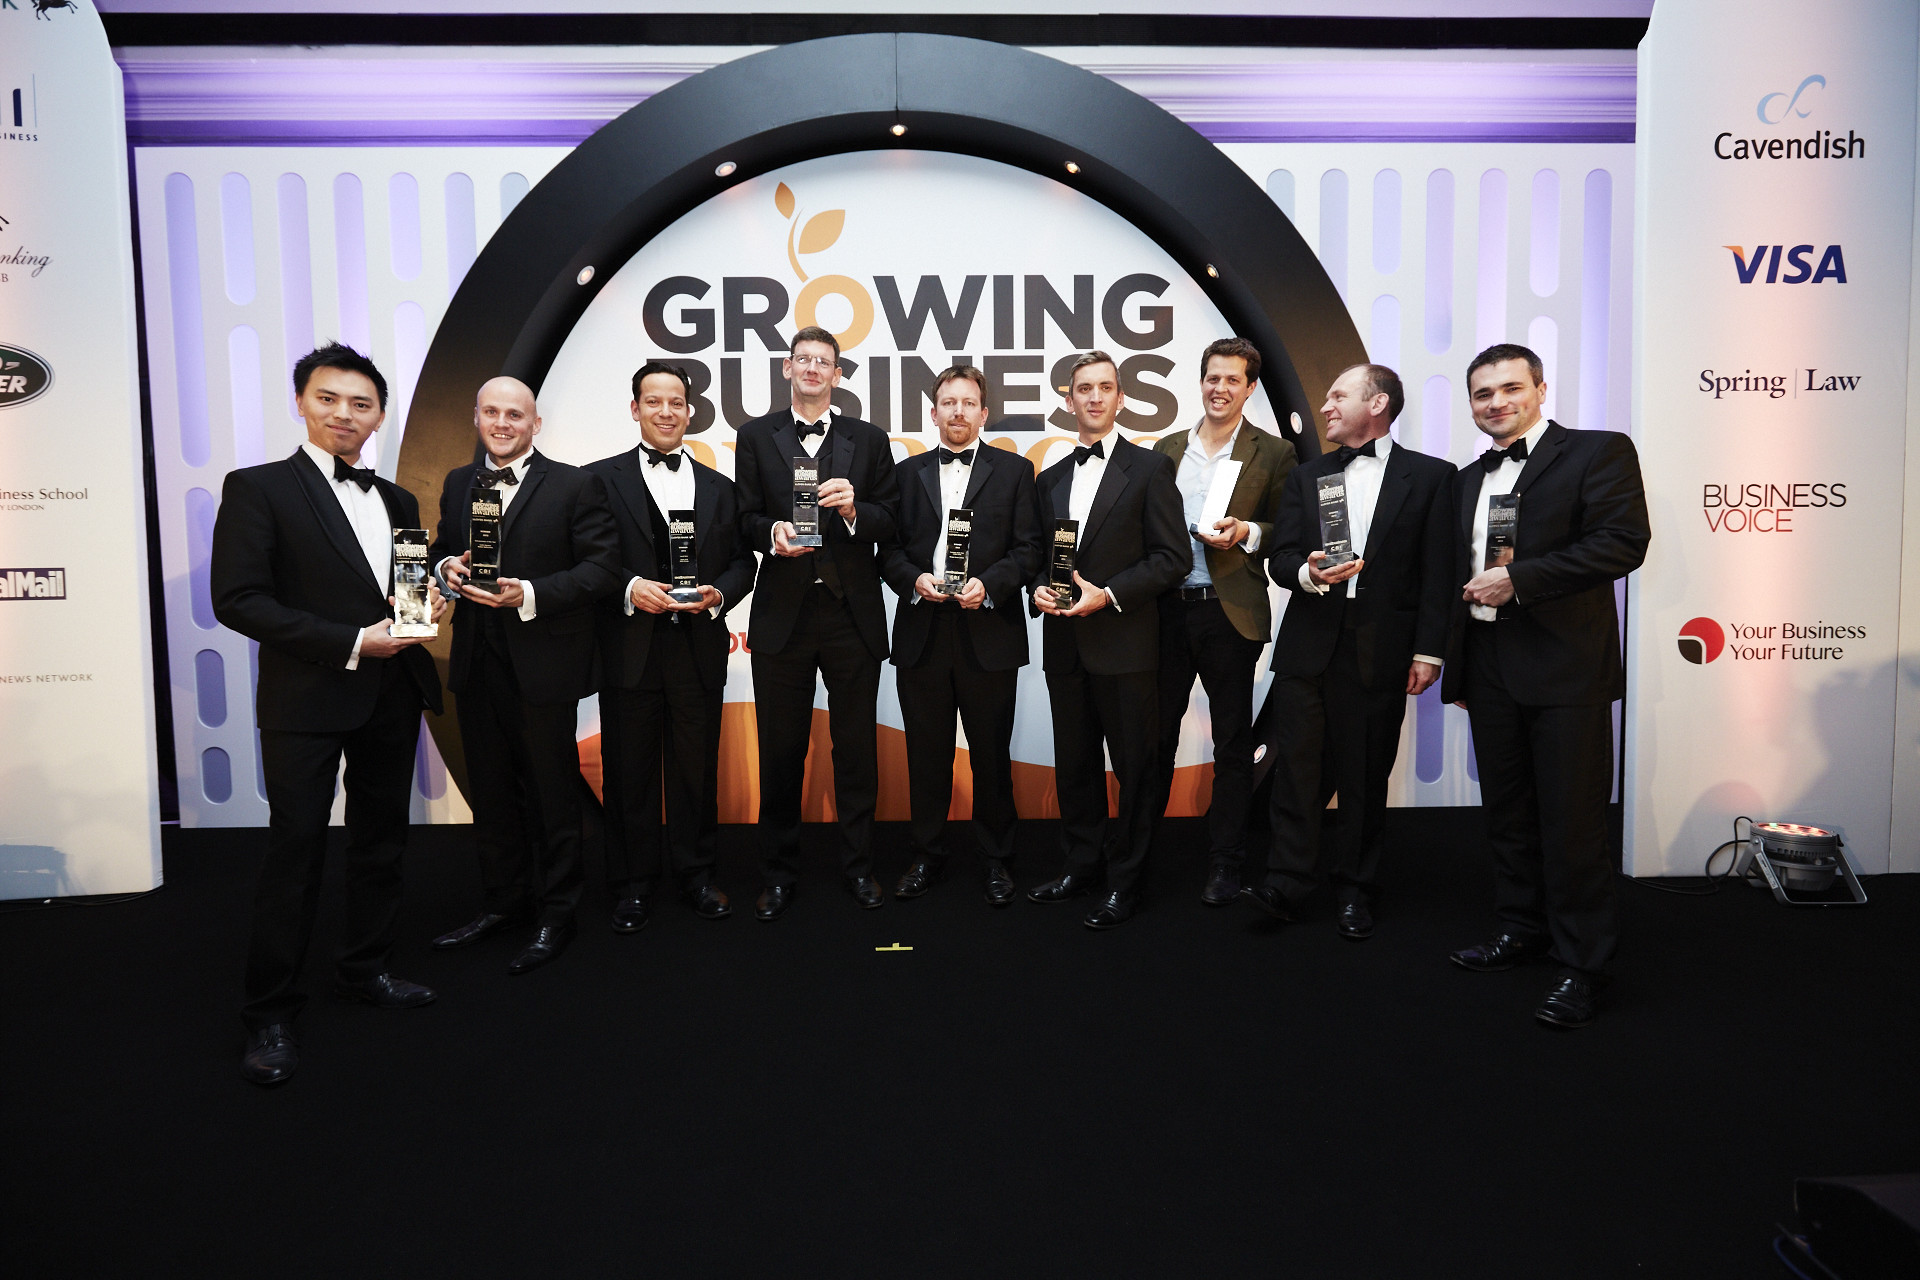 Growing Business Awards 2013 shortlist announced